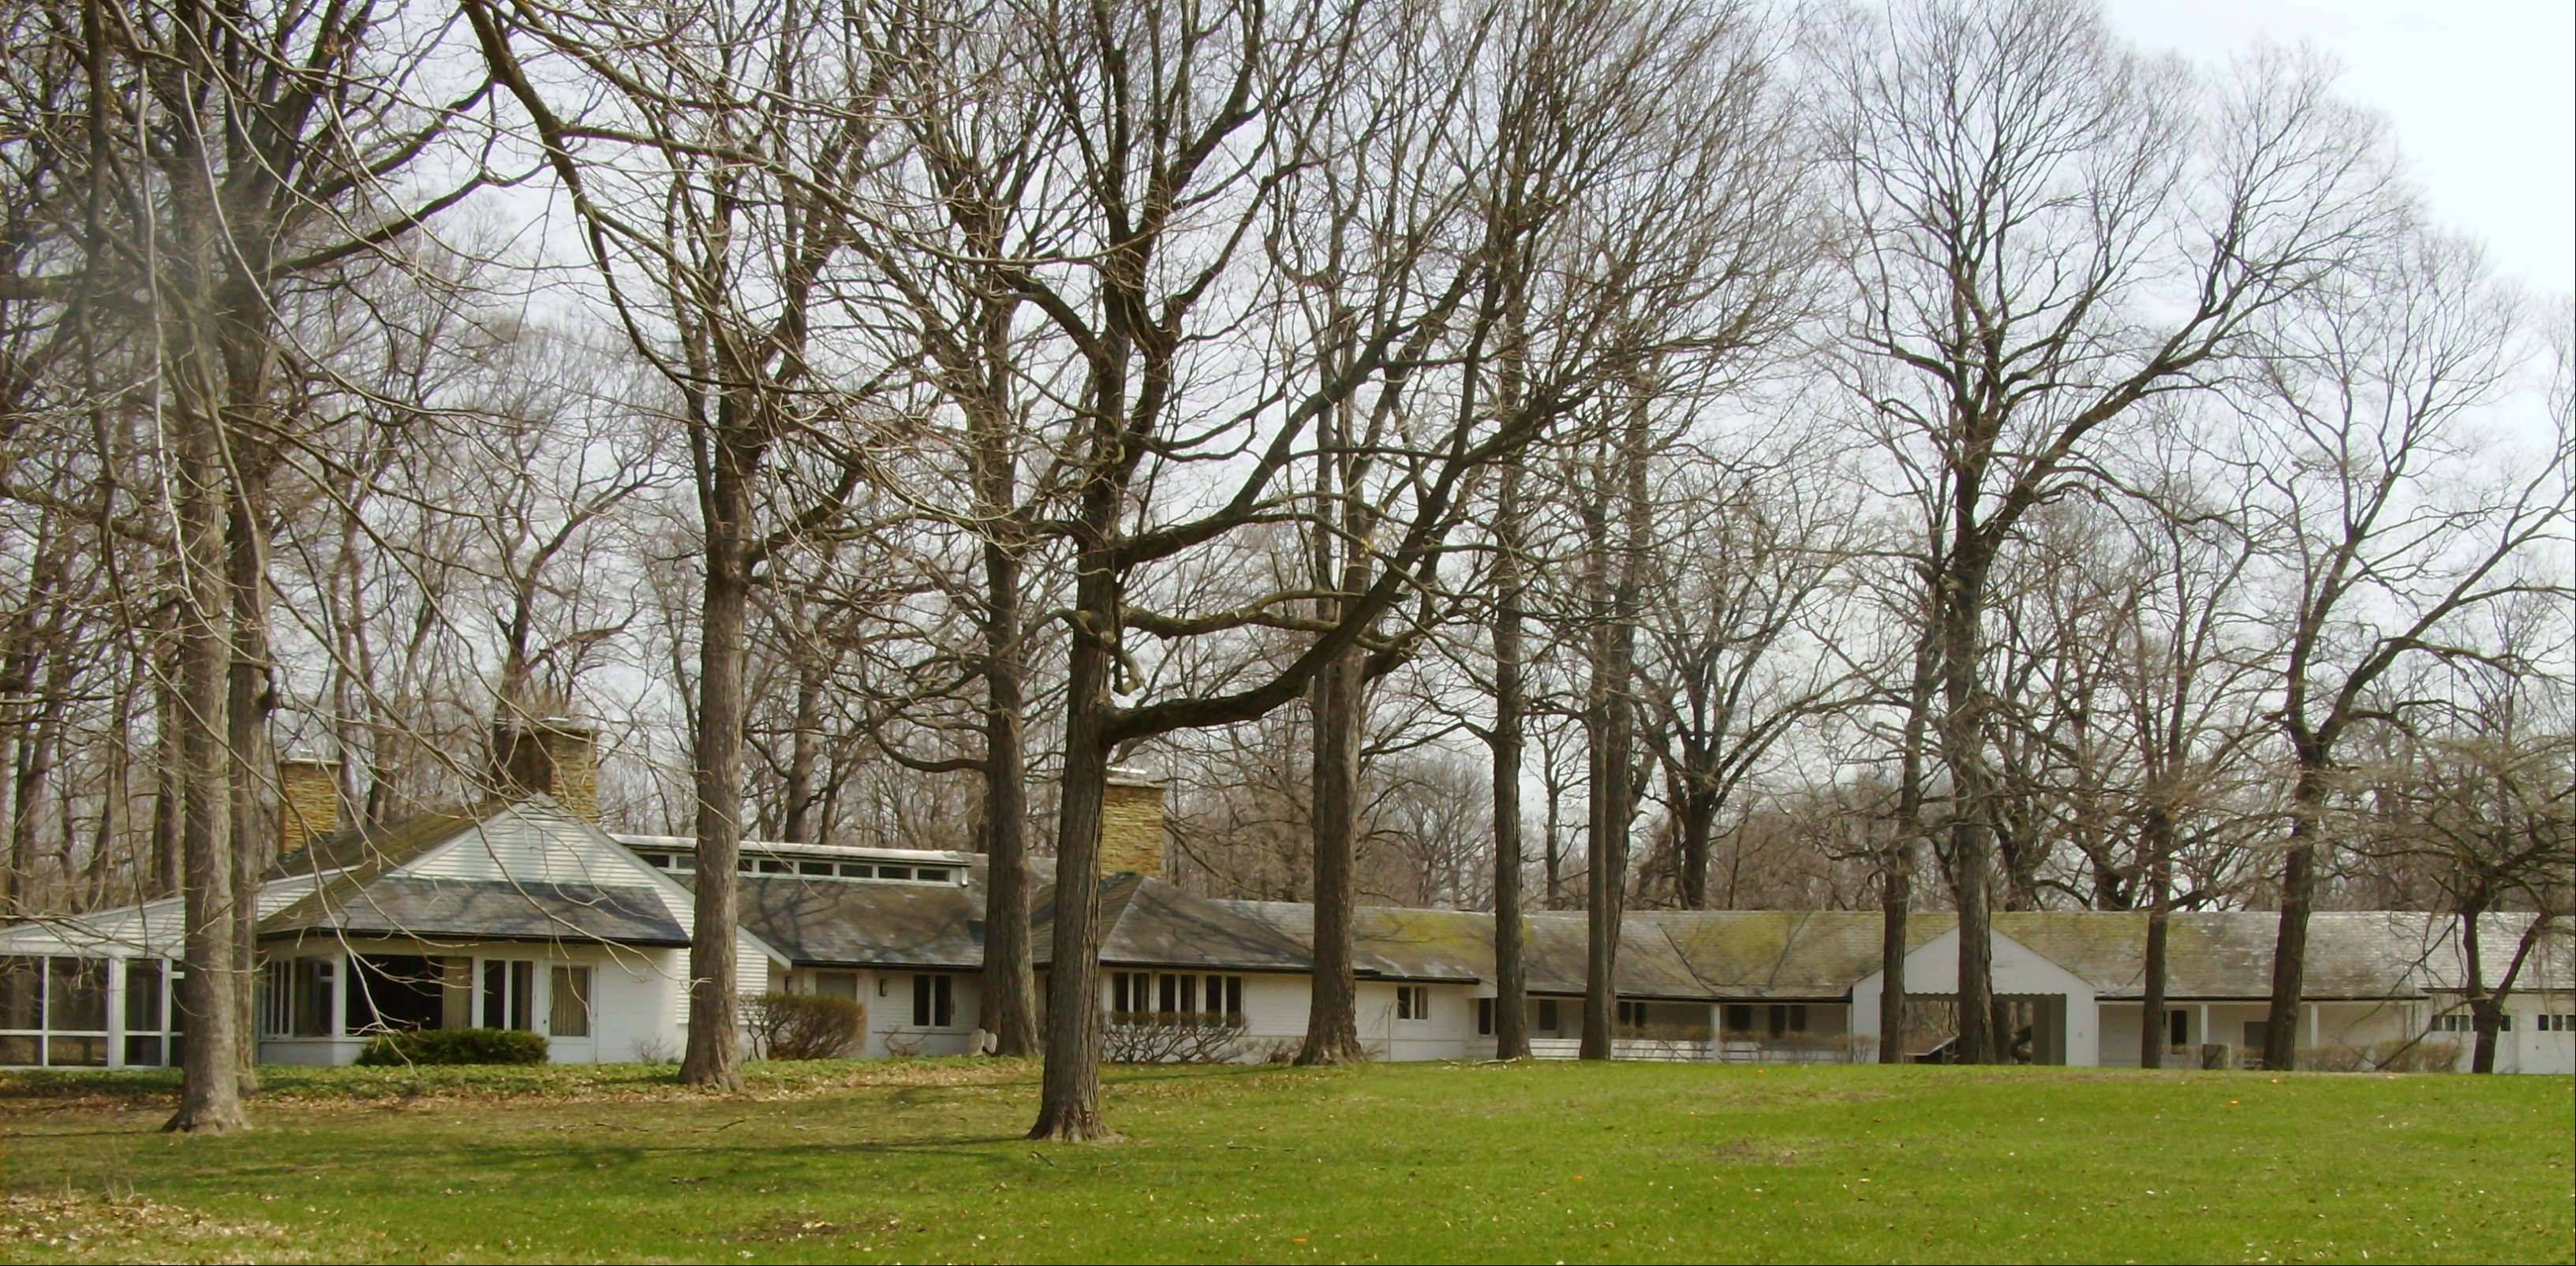 The Glen A. Lloyd House, constructed in 1936, is the estate house in the Lloyd's Woods portion of the Lake County Forest Preserve's 612-acre Daniel Wright Woods.